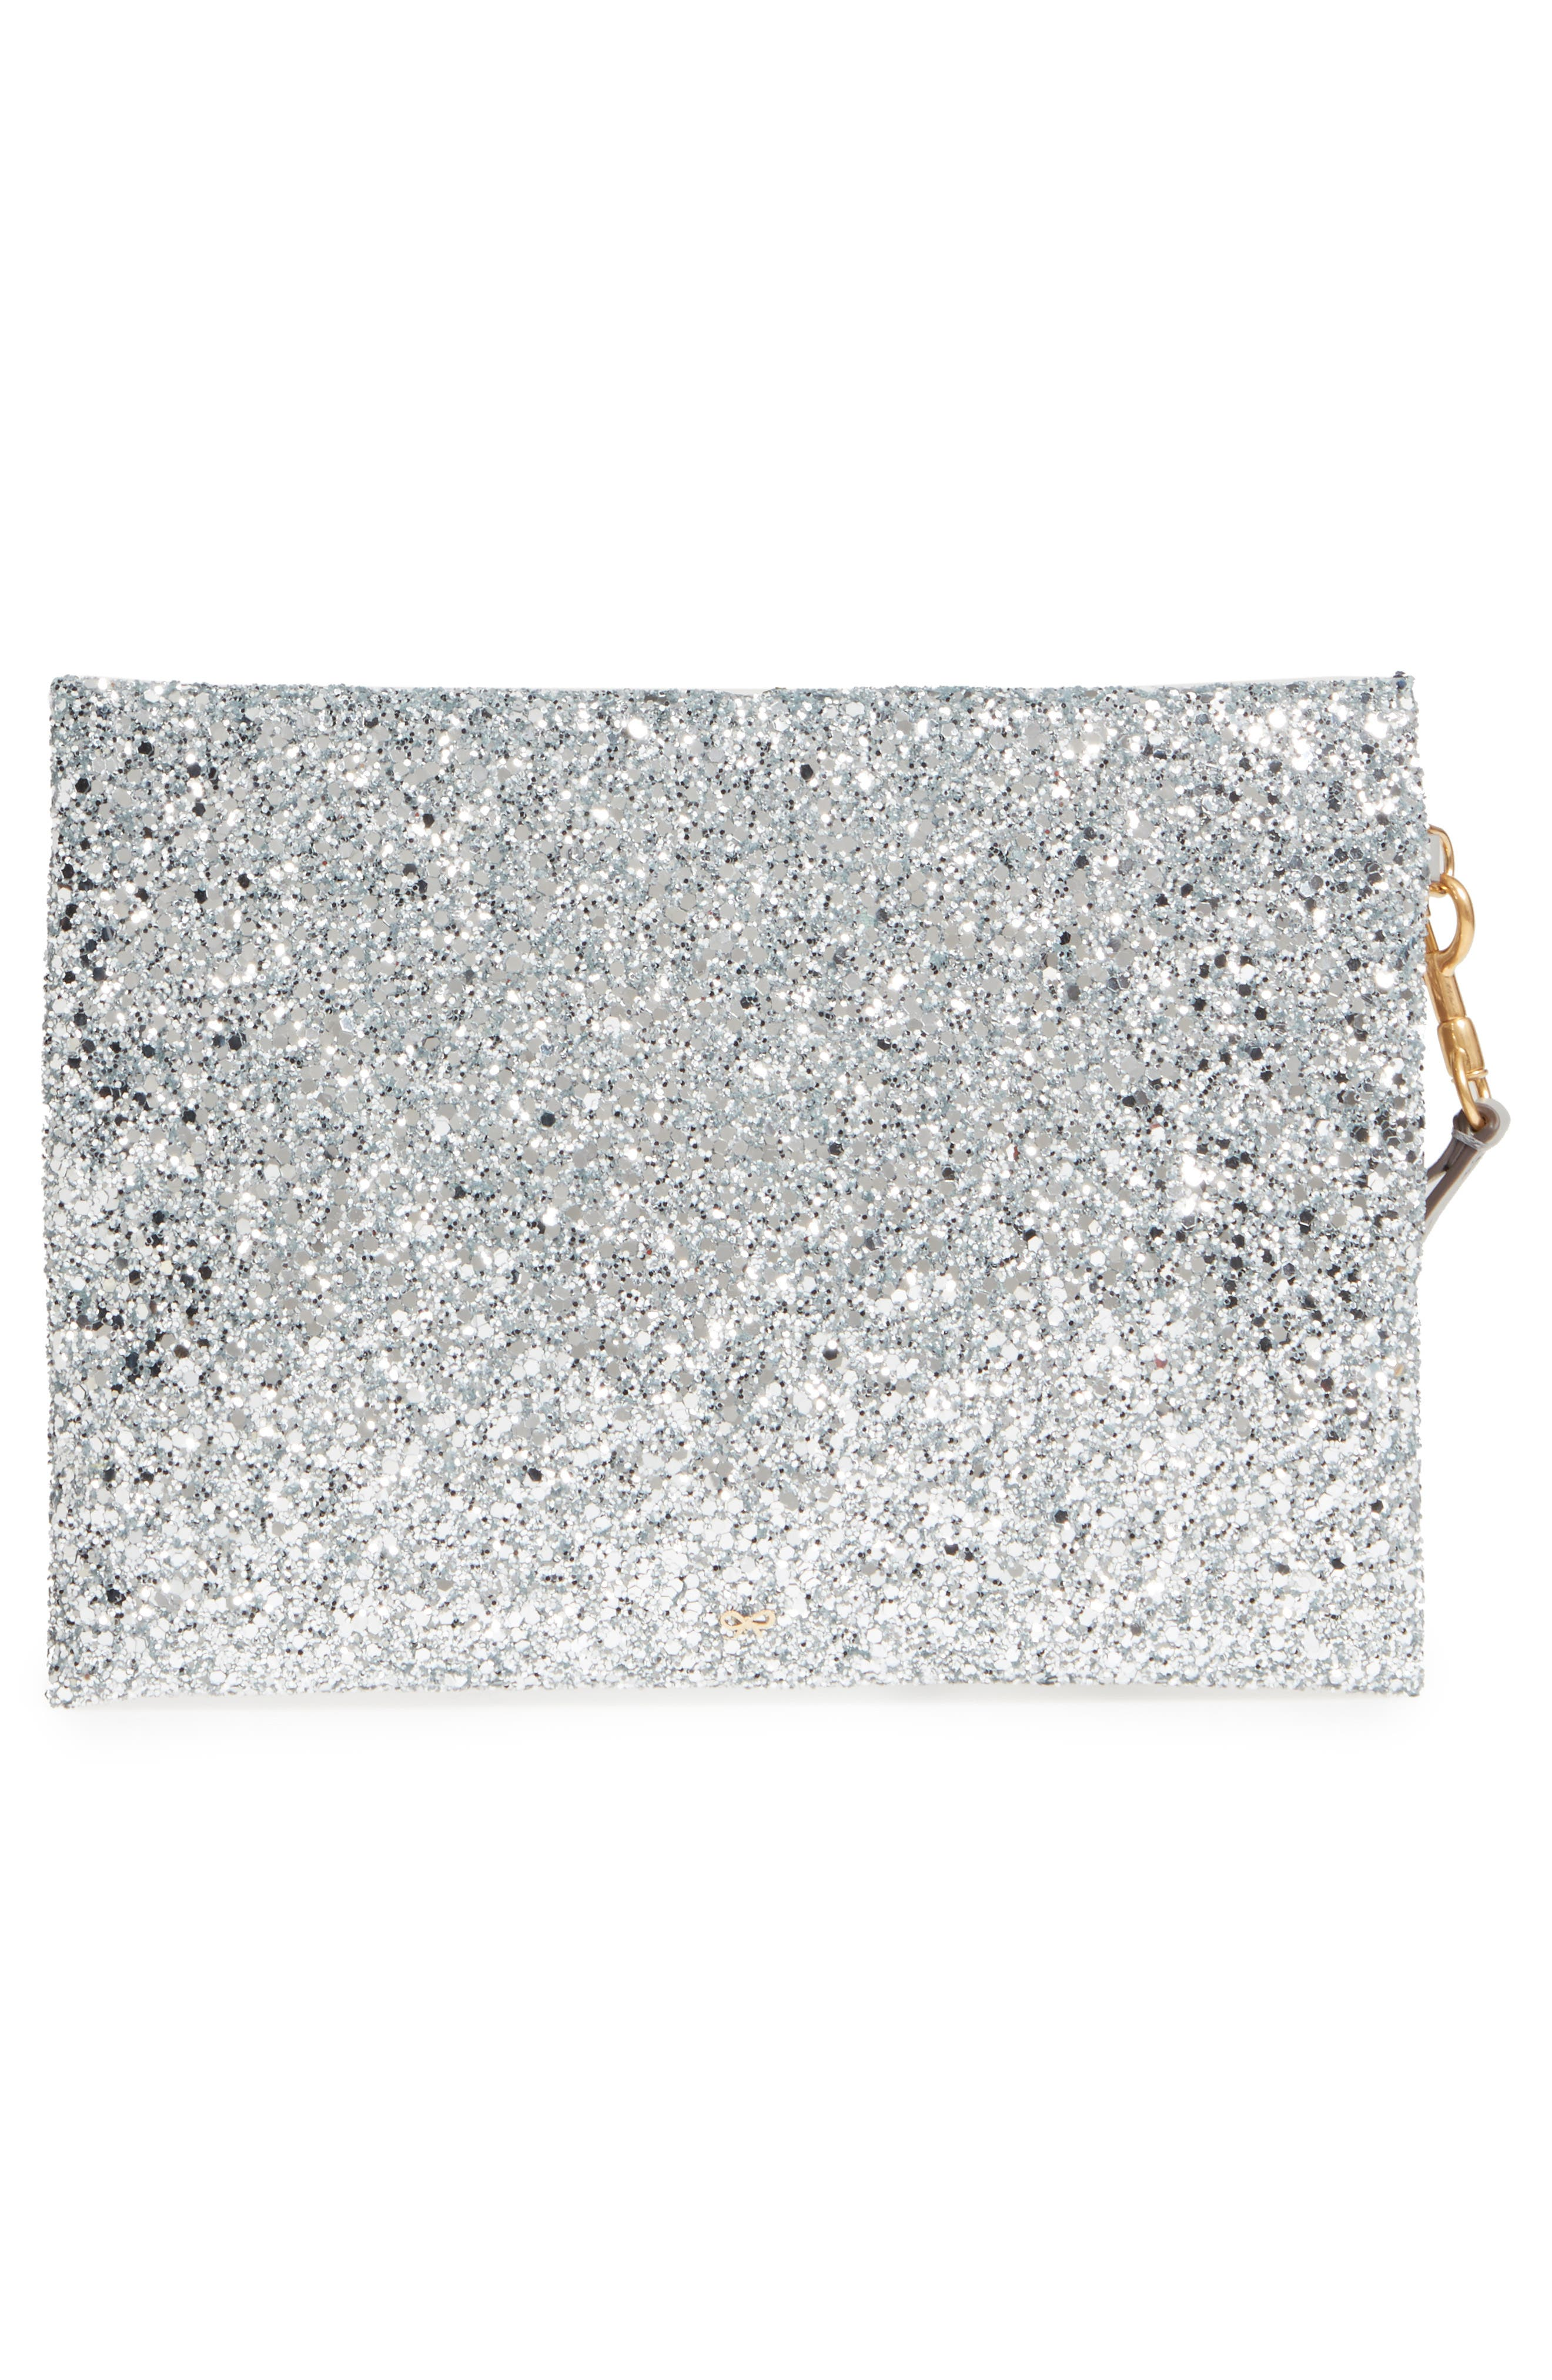 Eyes Circulus Glitter Pouch,                             Alternate thumbnail 6, color,